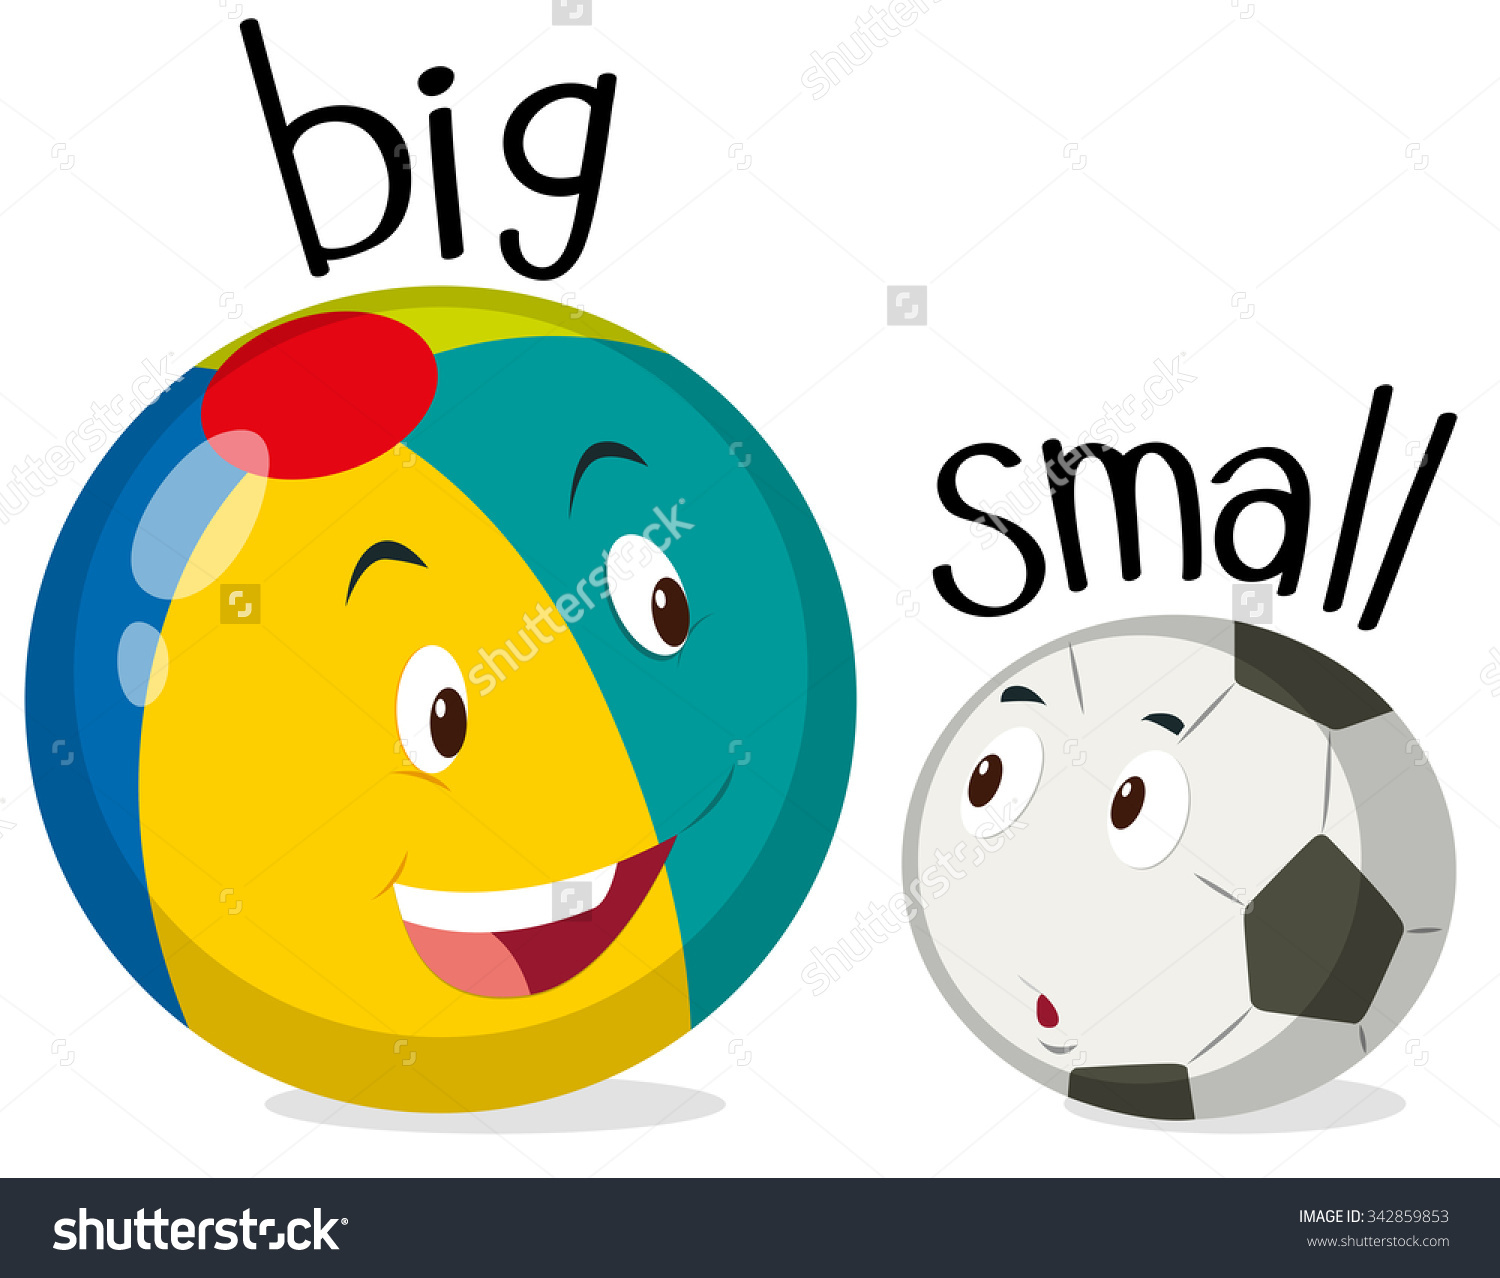 Big and small clipart - Clipground